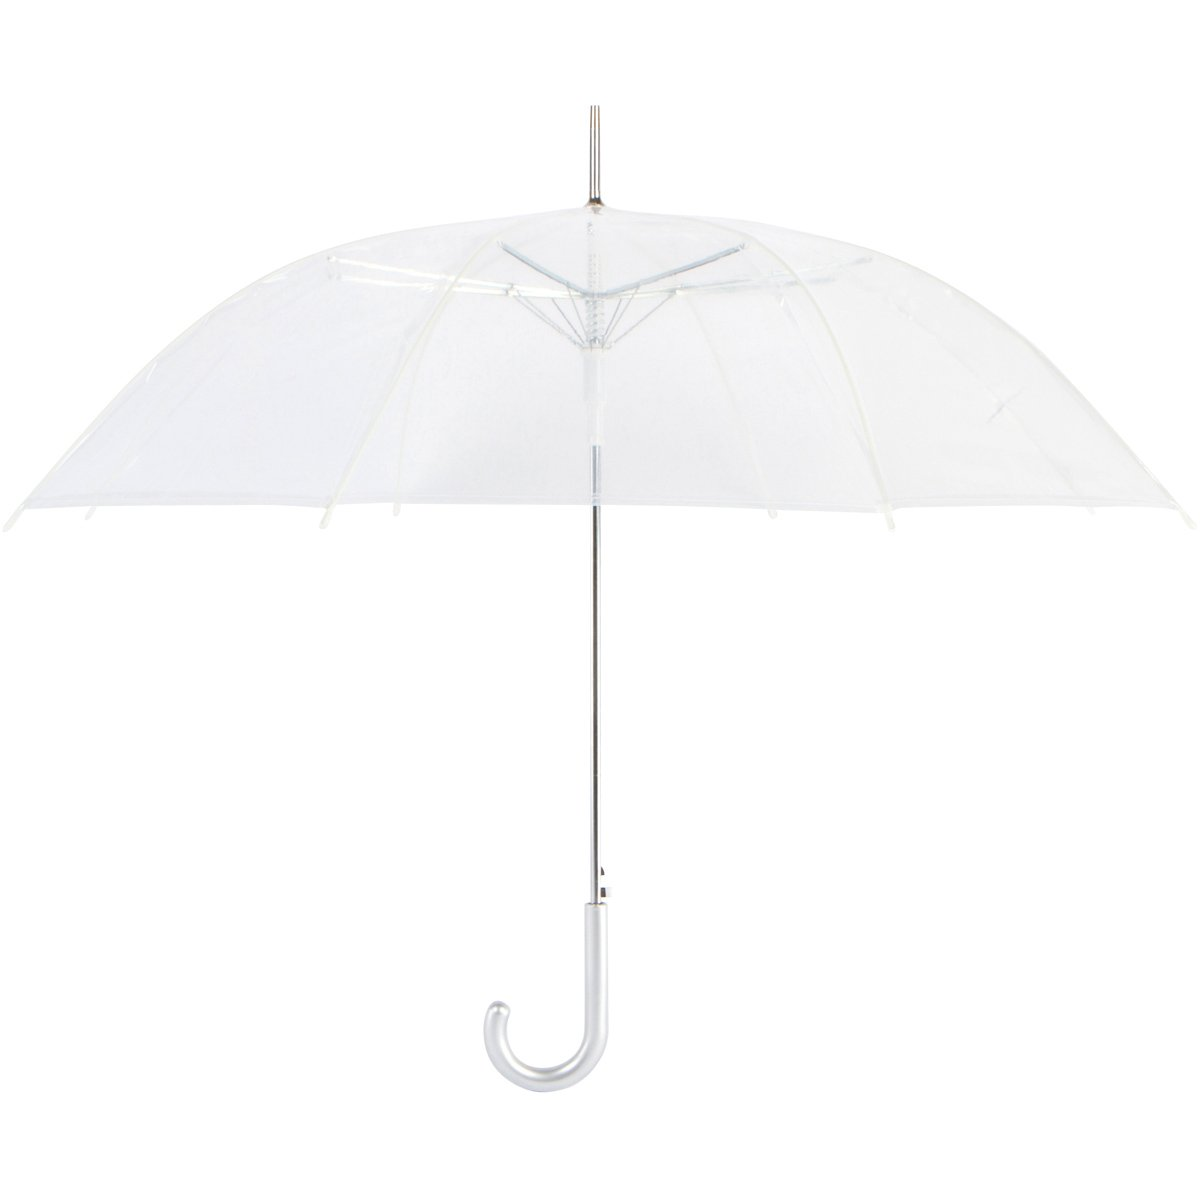 Cloak 50pk Auto Open Classic Clear Umbrellas